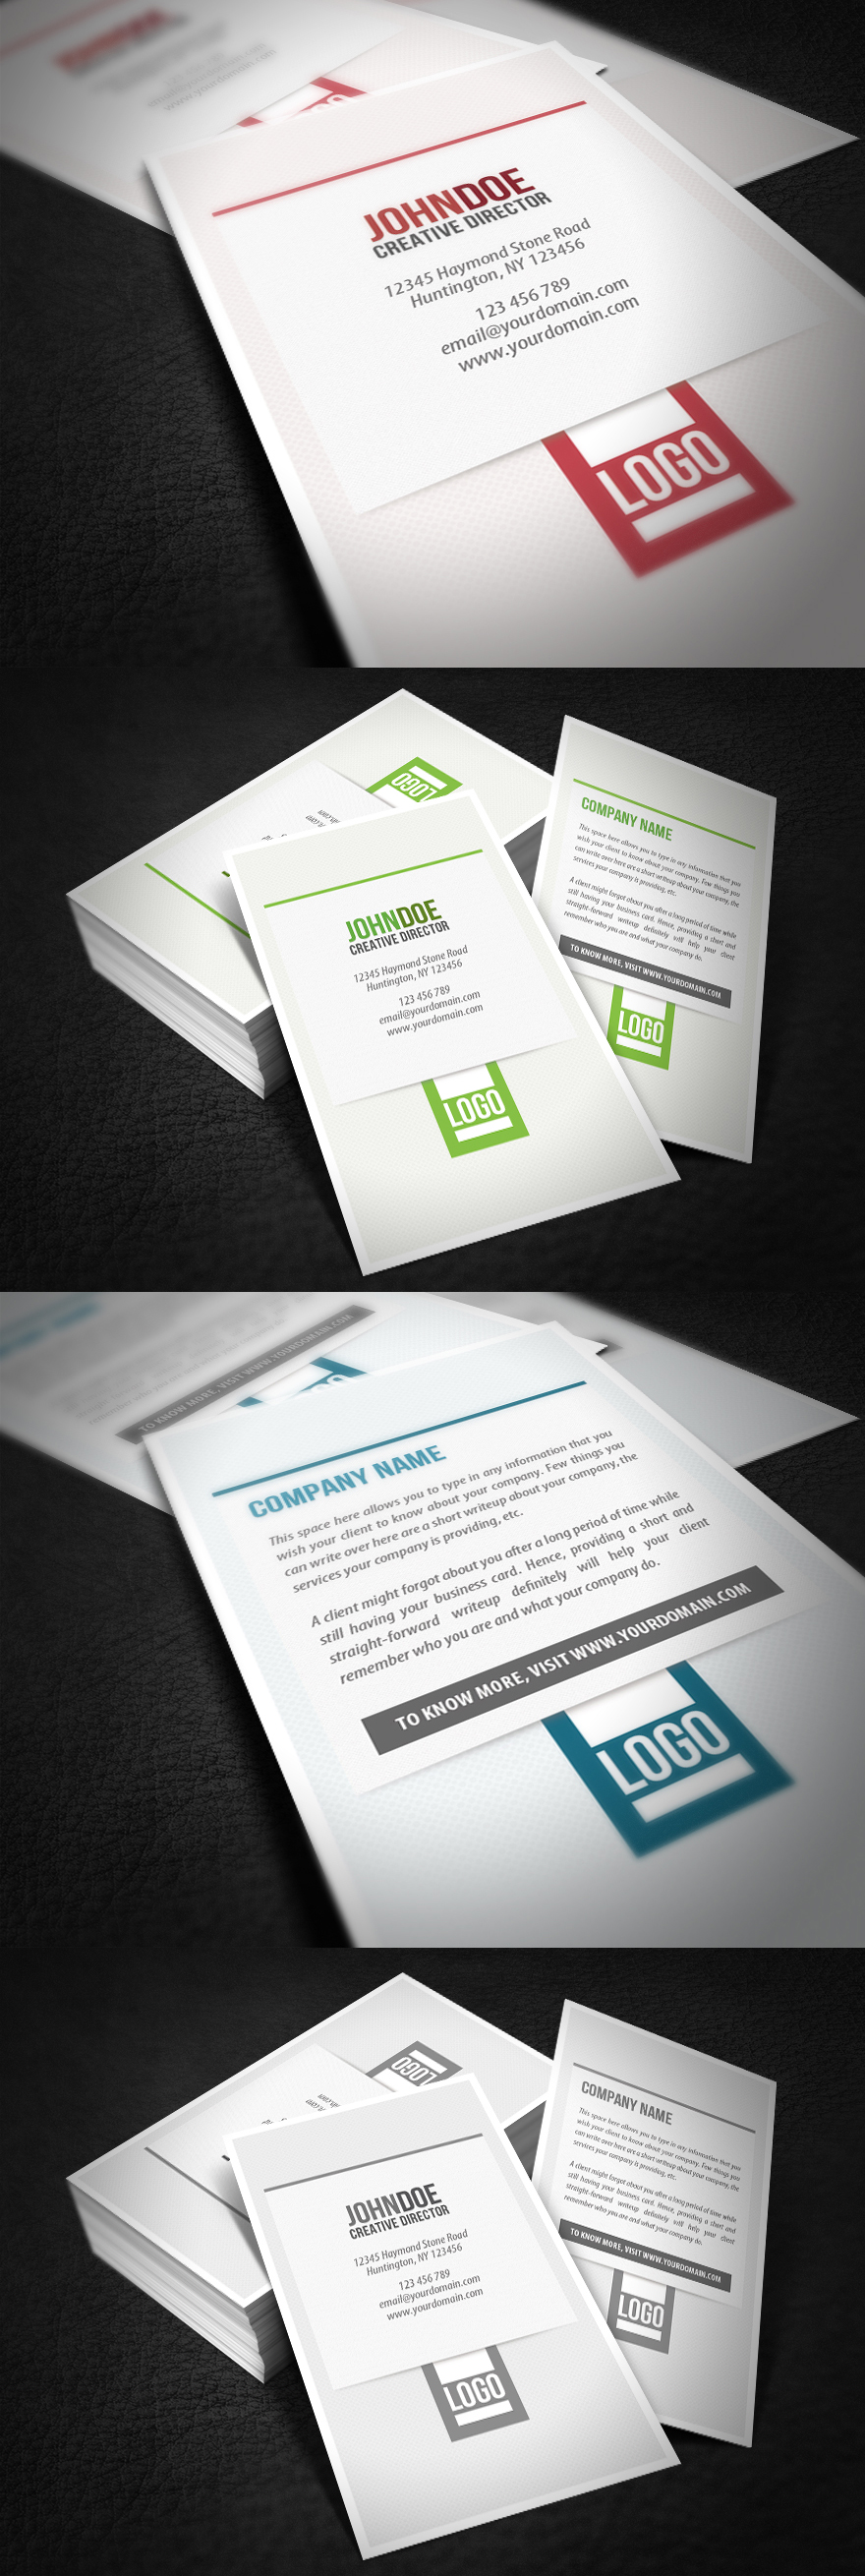 New age business card by glenngoh on deviantart new age business card by glenngoh new age business card by glenngoh colourmoves